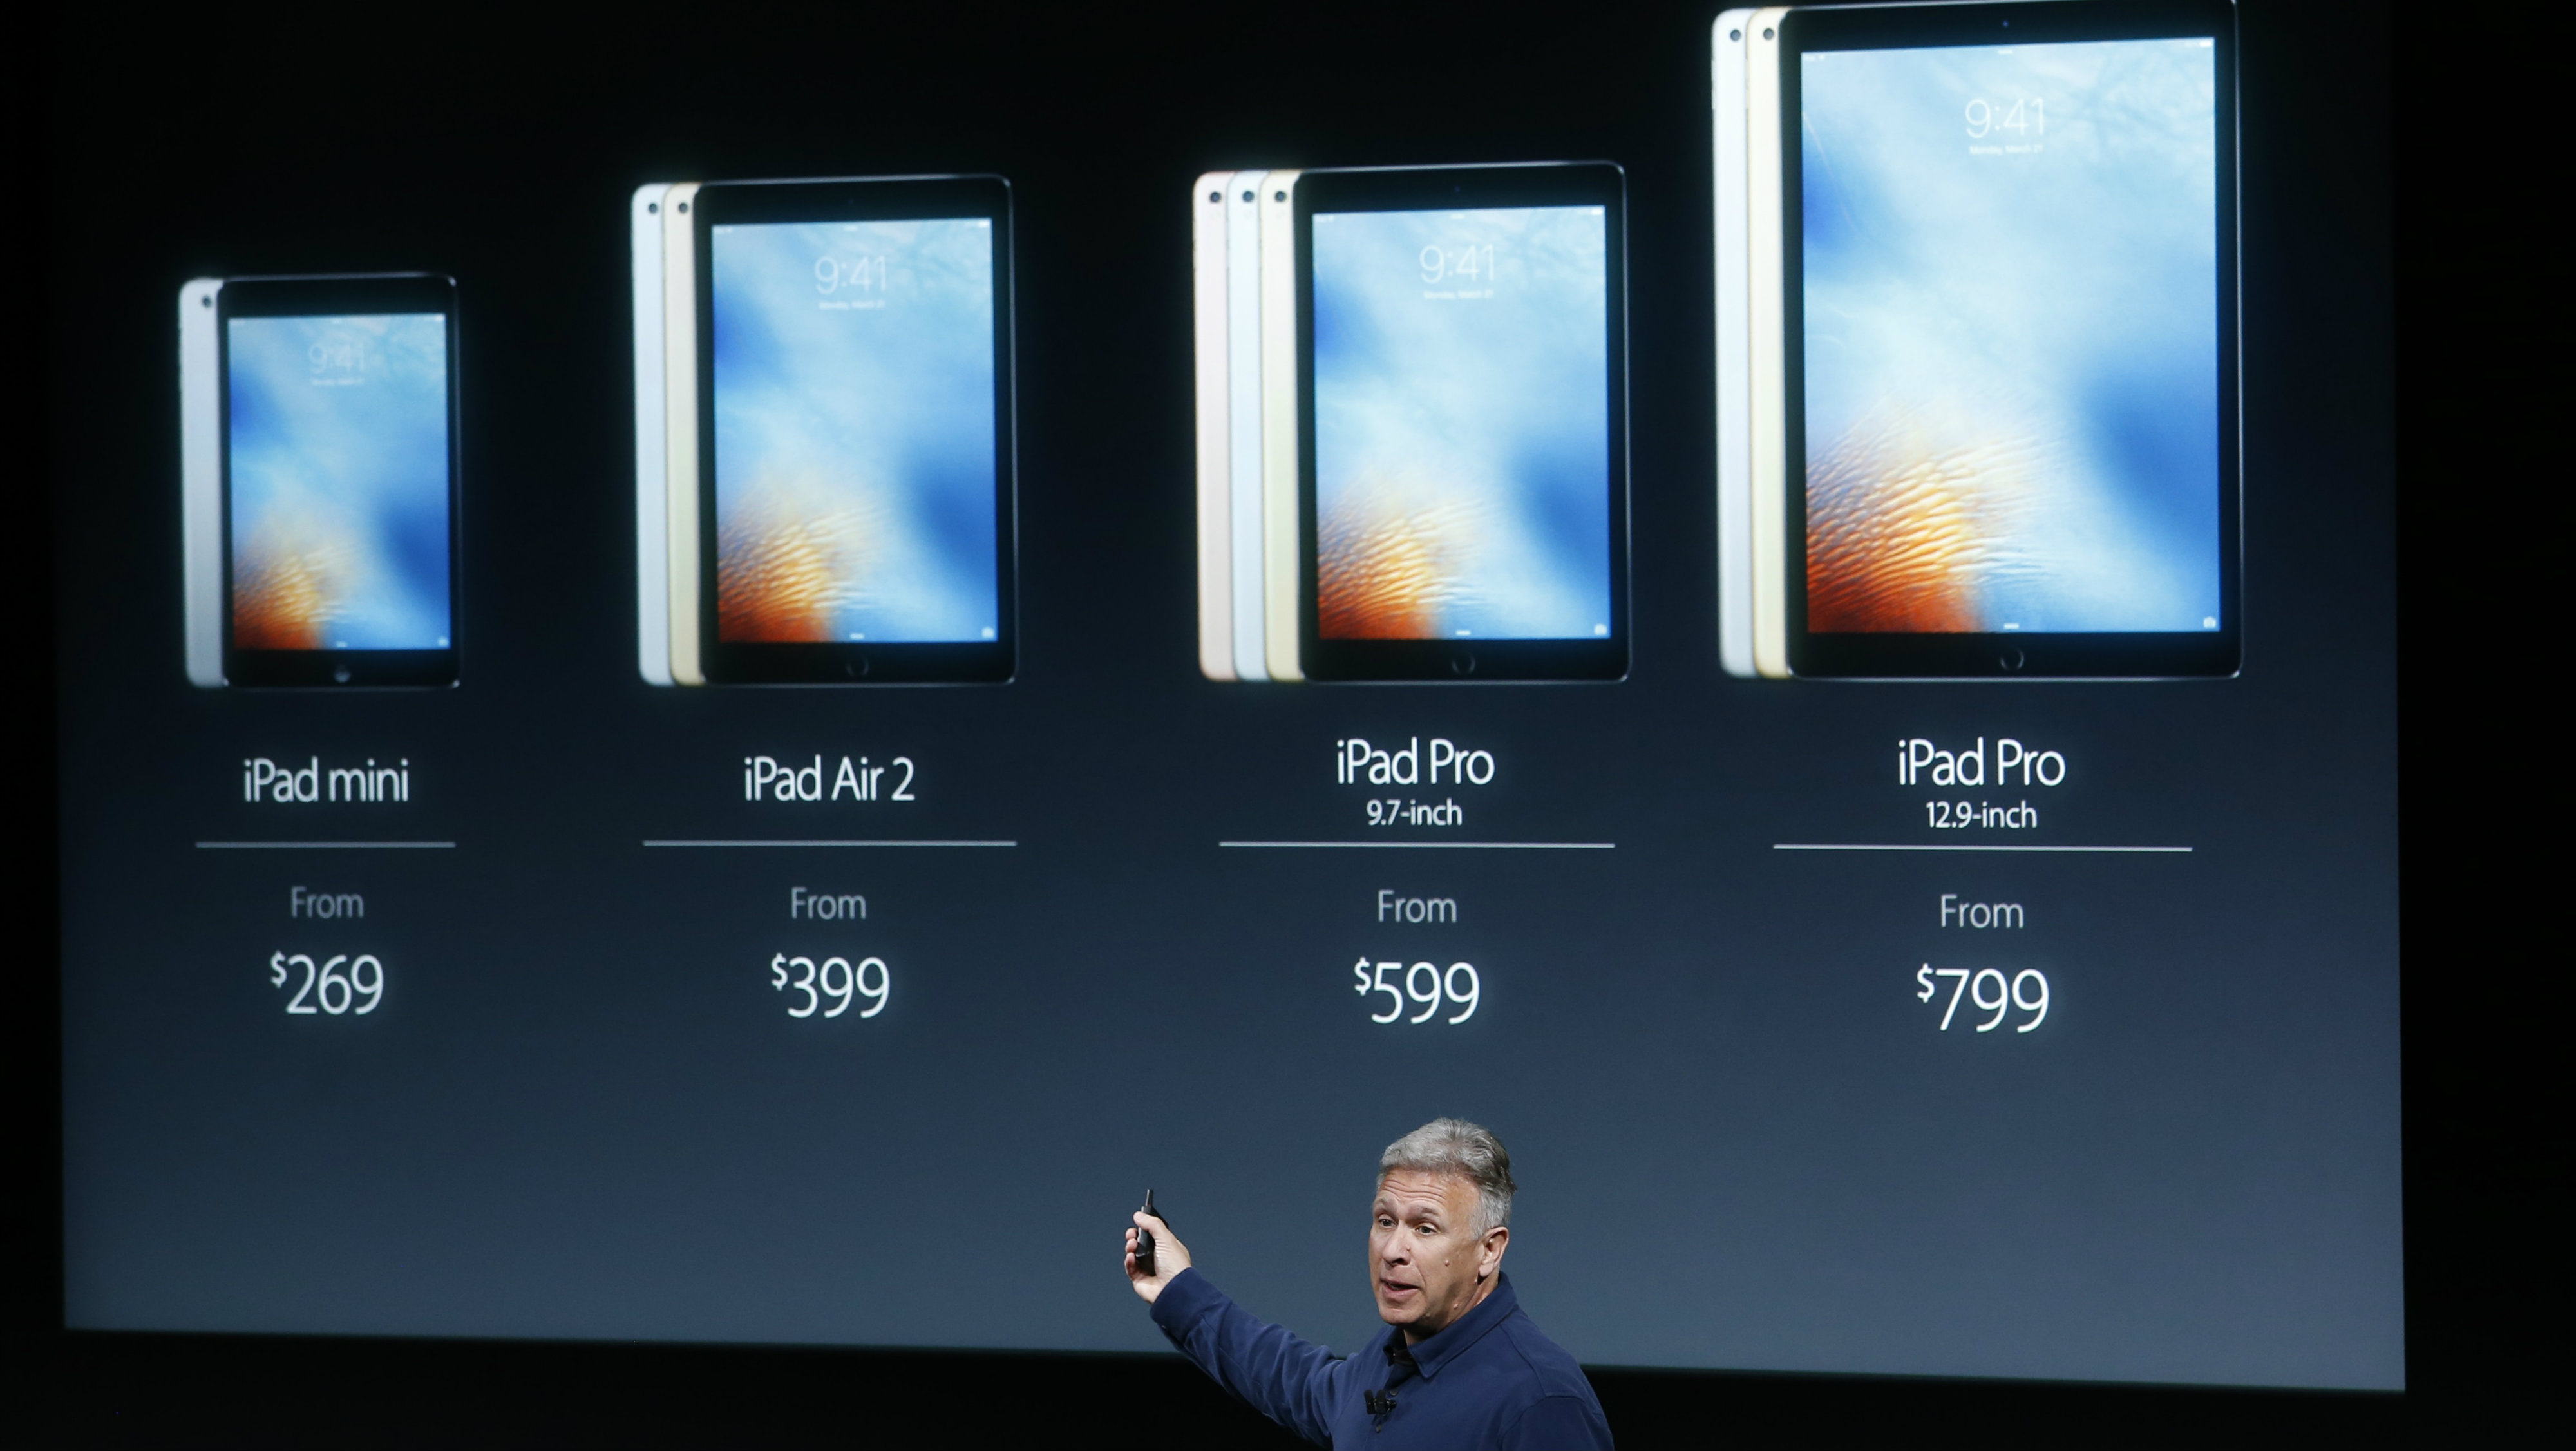 Phil Schiller, senior VP of worldwide marketing for Apple, introduces the iPad line during an event at the Apple headquarters in Cupertino, California March 21, 2016. REUTERS/Stephen Lam